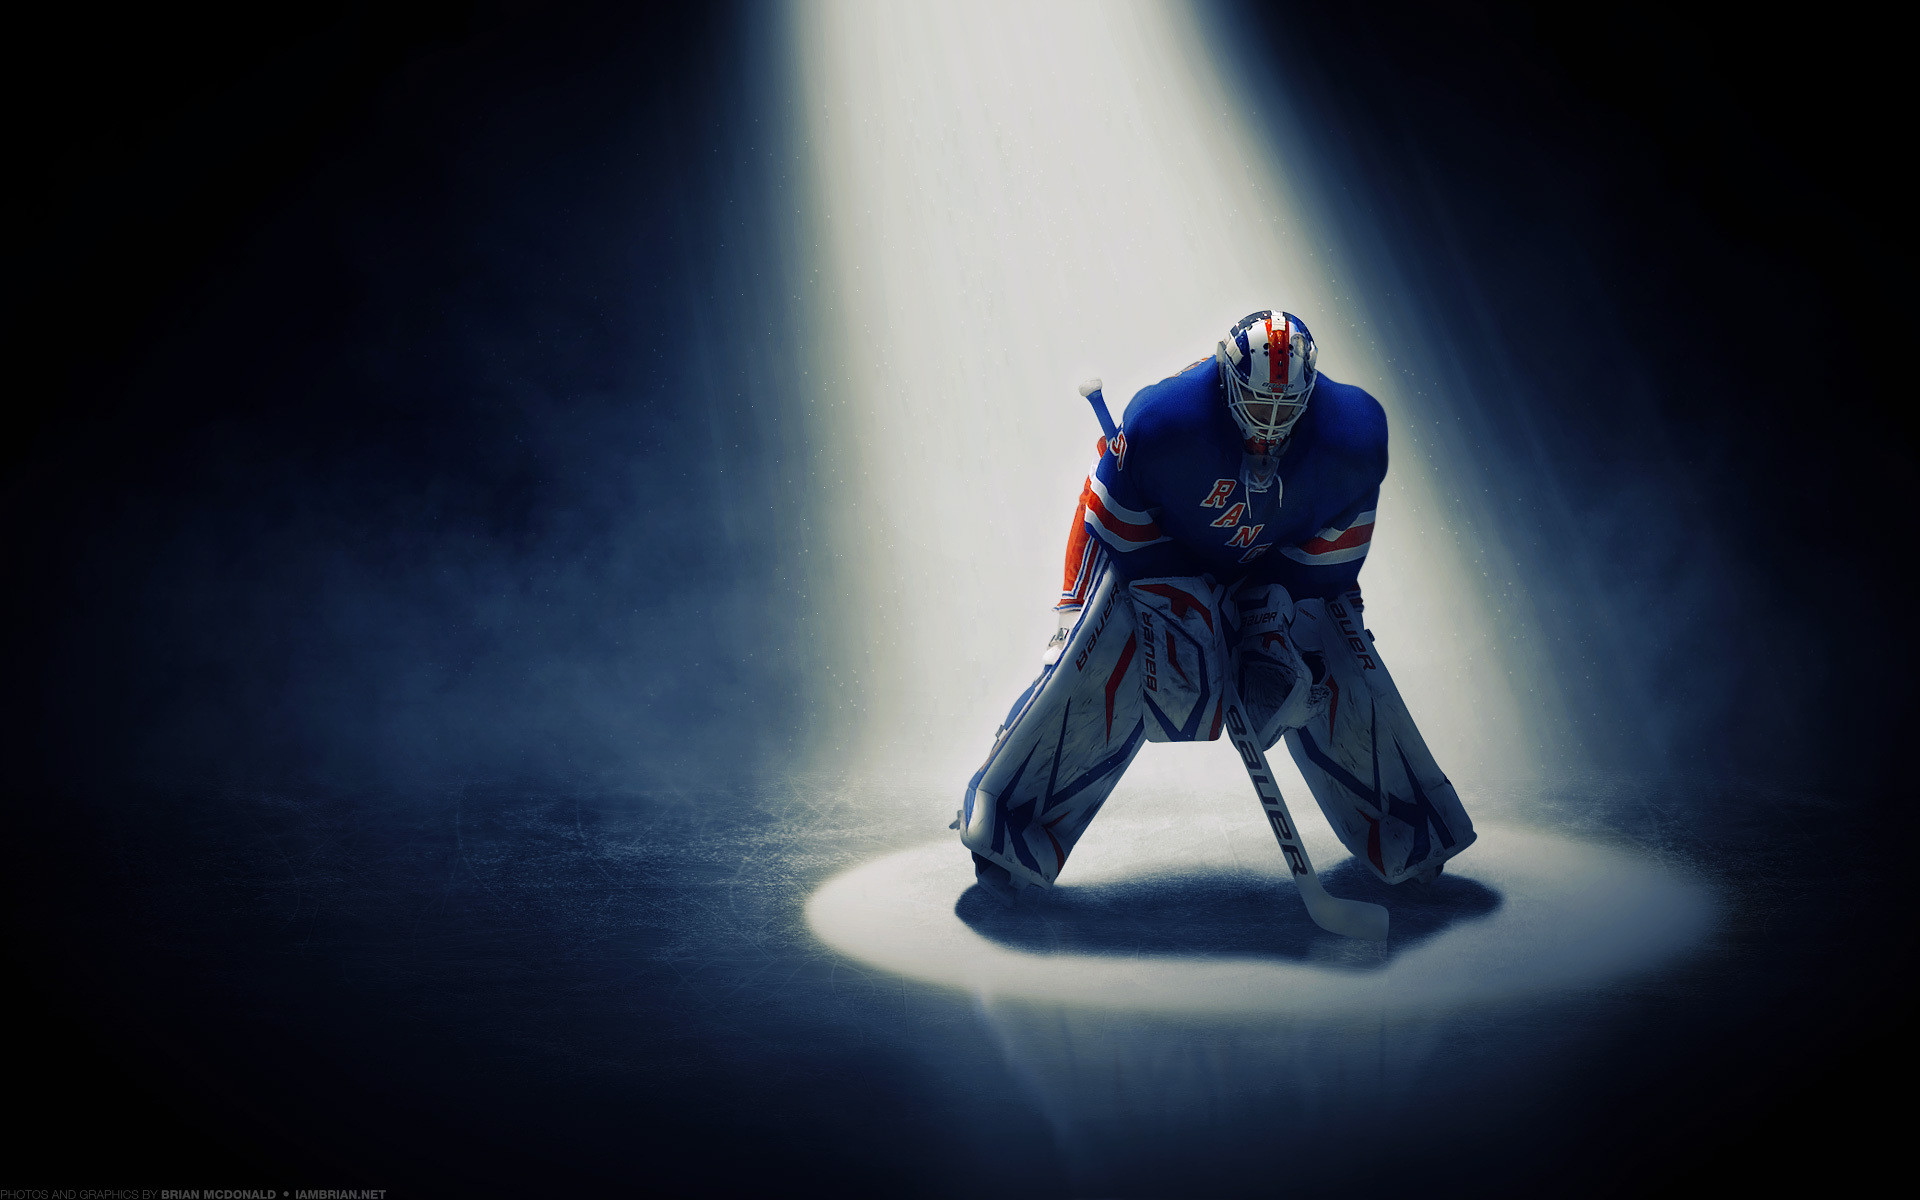 New york rangers Henrik Lundqvist wallpapers and images – wallpapers .